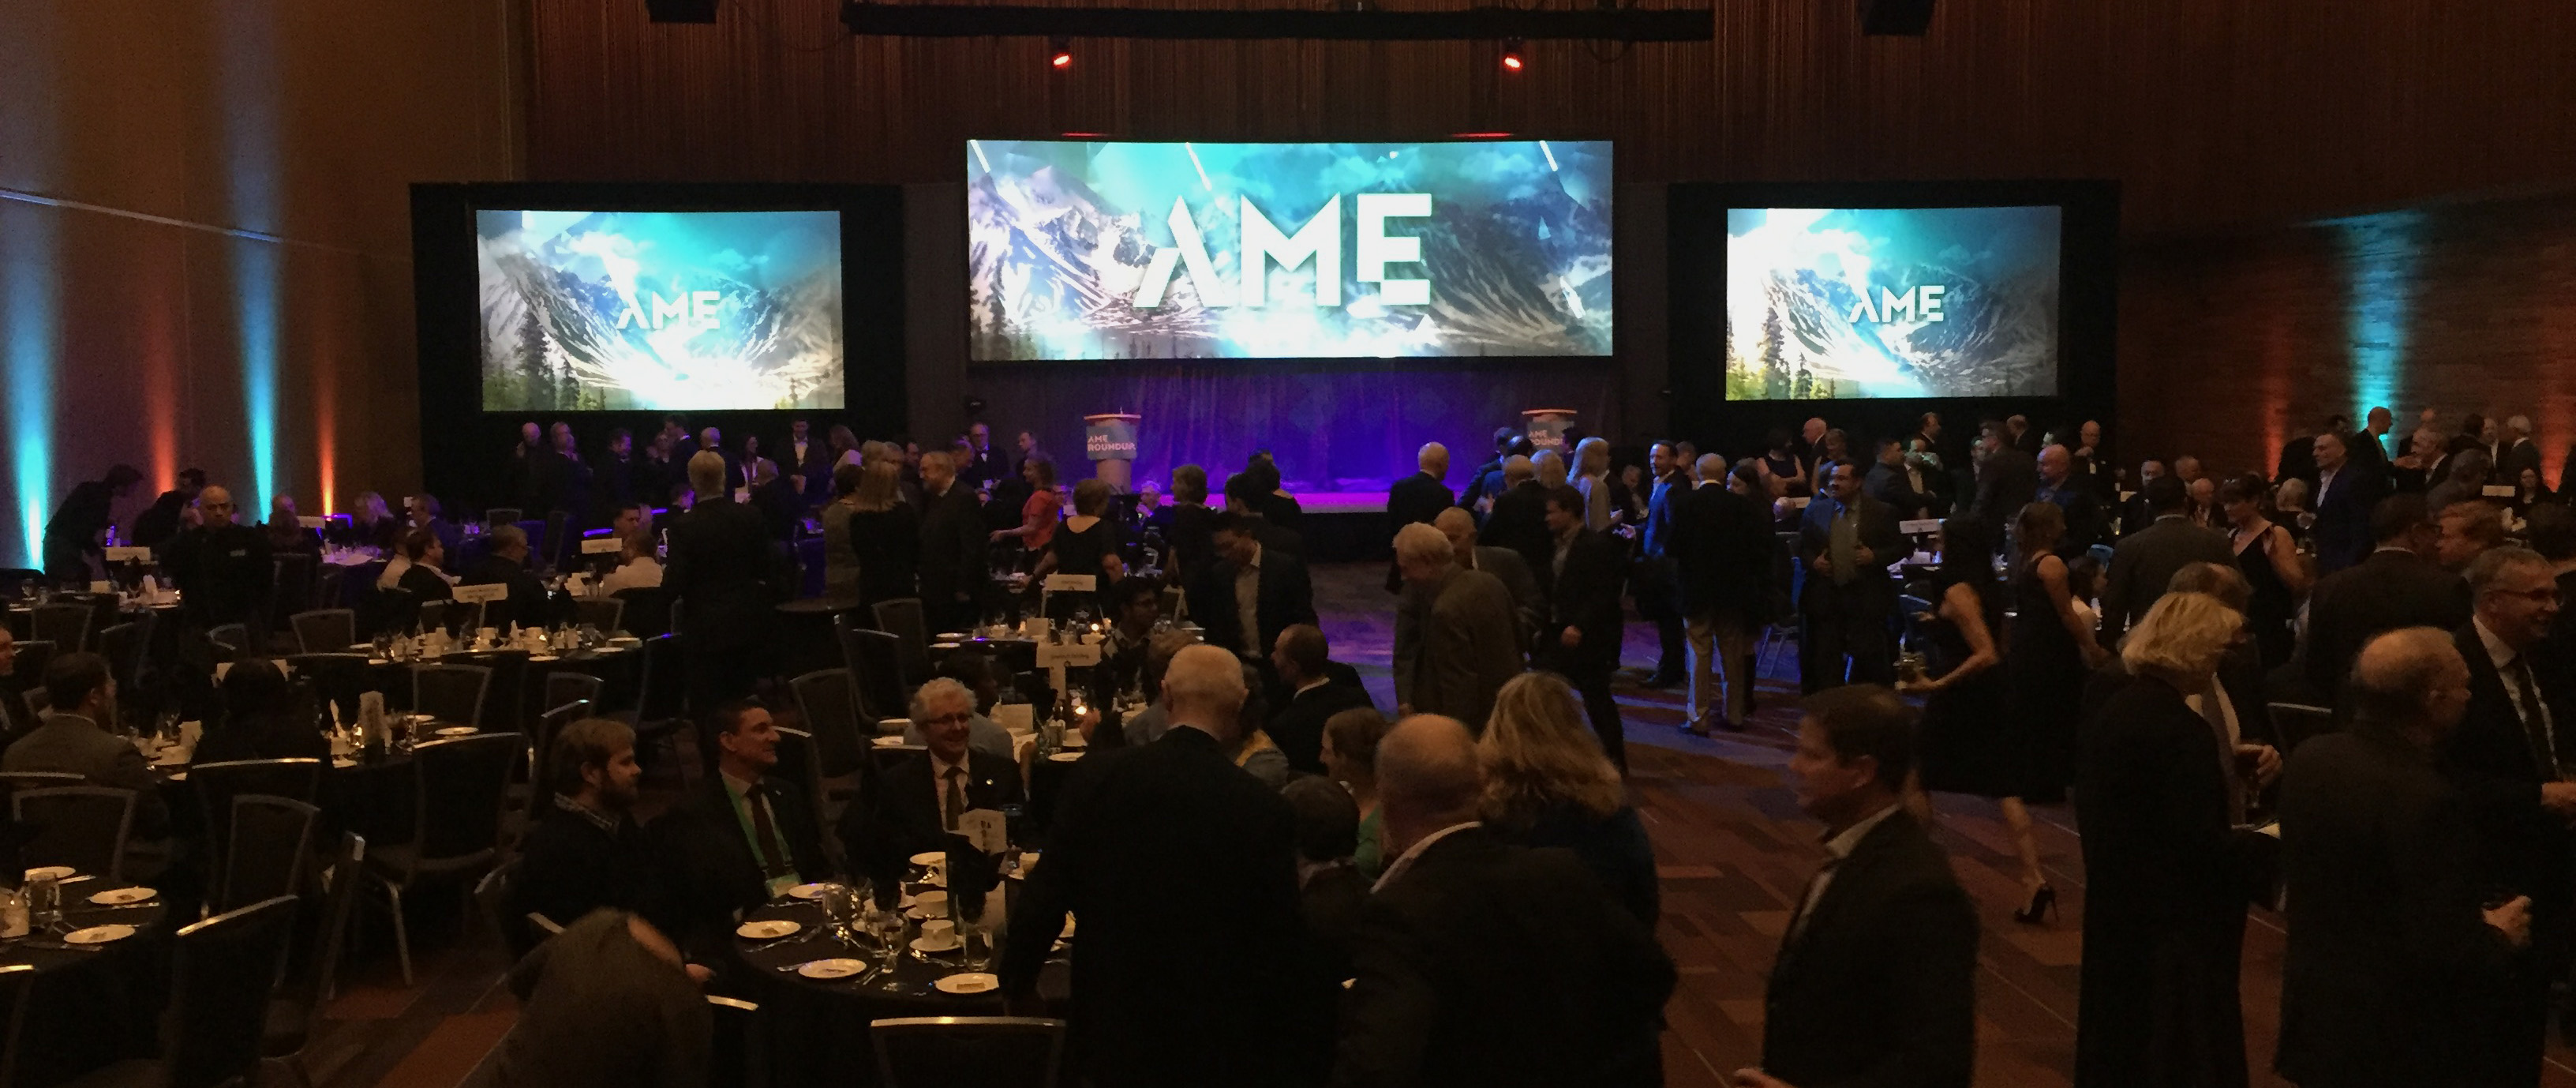 AME Event Image 1